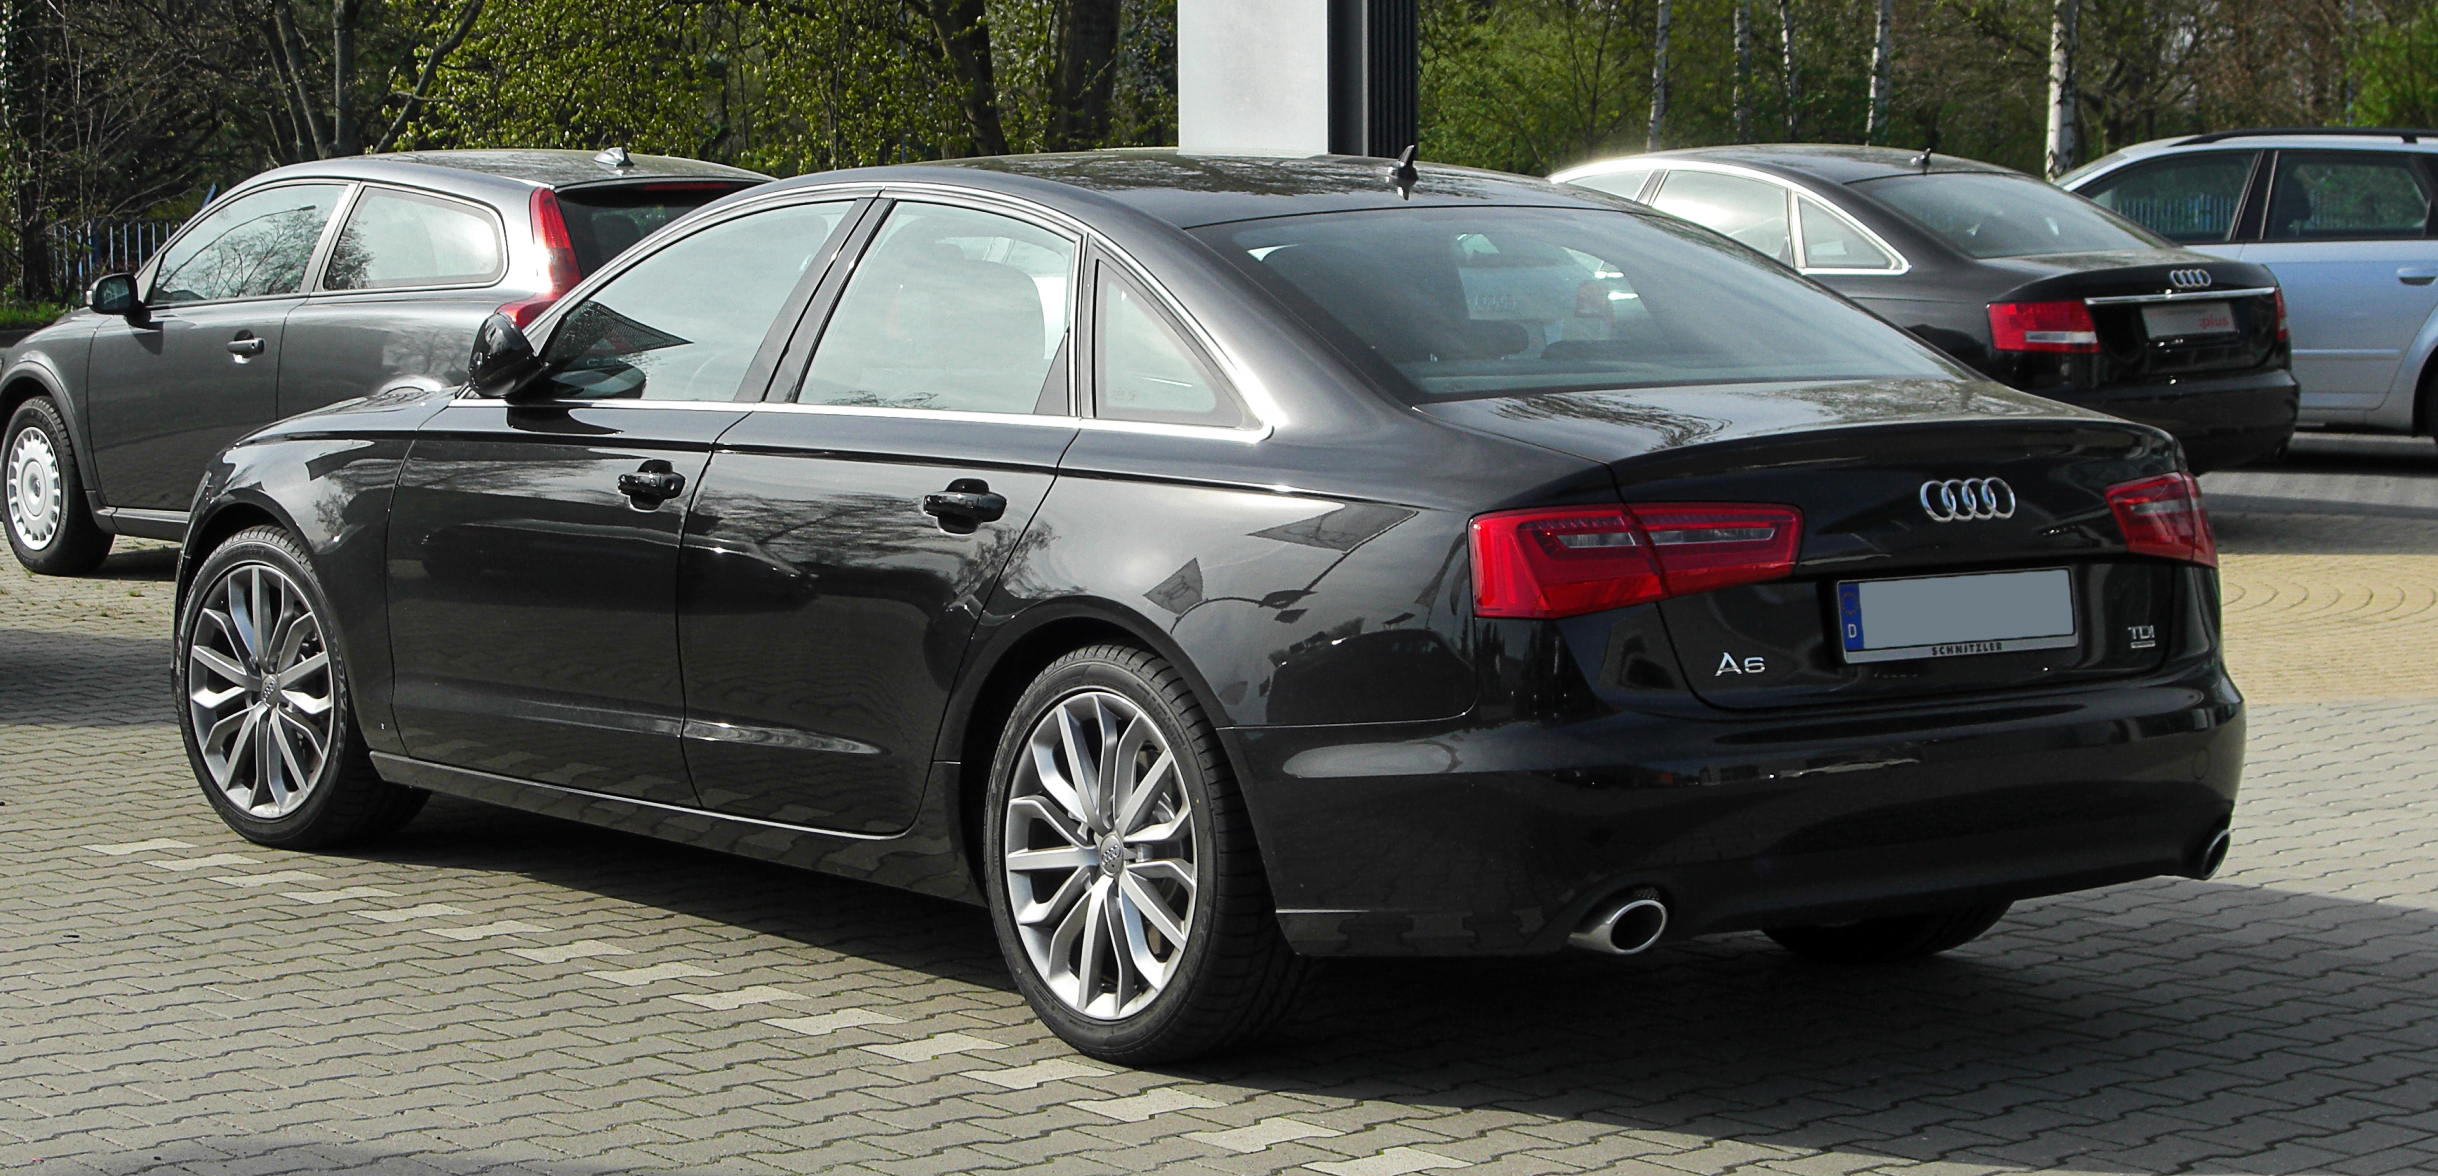 file audi a6 3 0 tdi quattro c7 heckansicht 2 april 2011 wikimedia commons. Black Bedroom Furniture Sets. Home Design Ideas